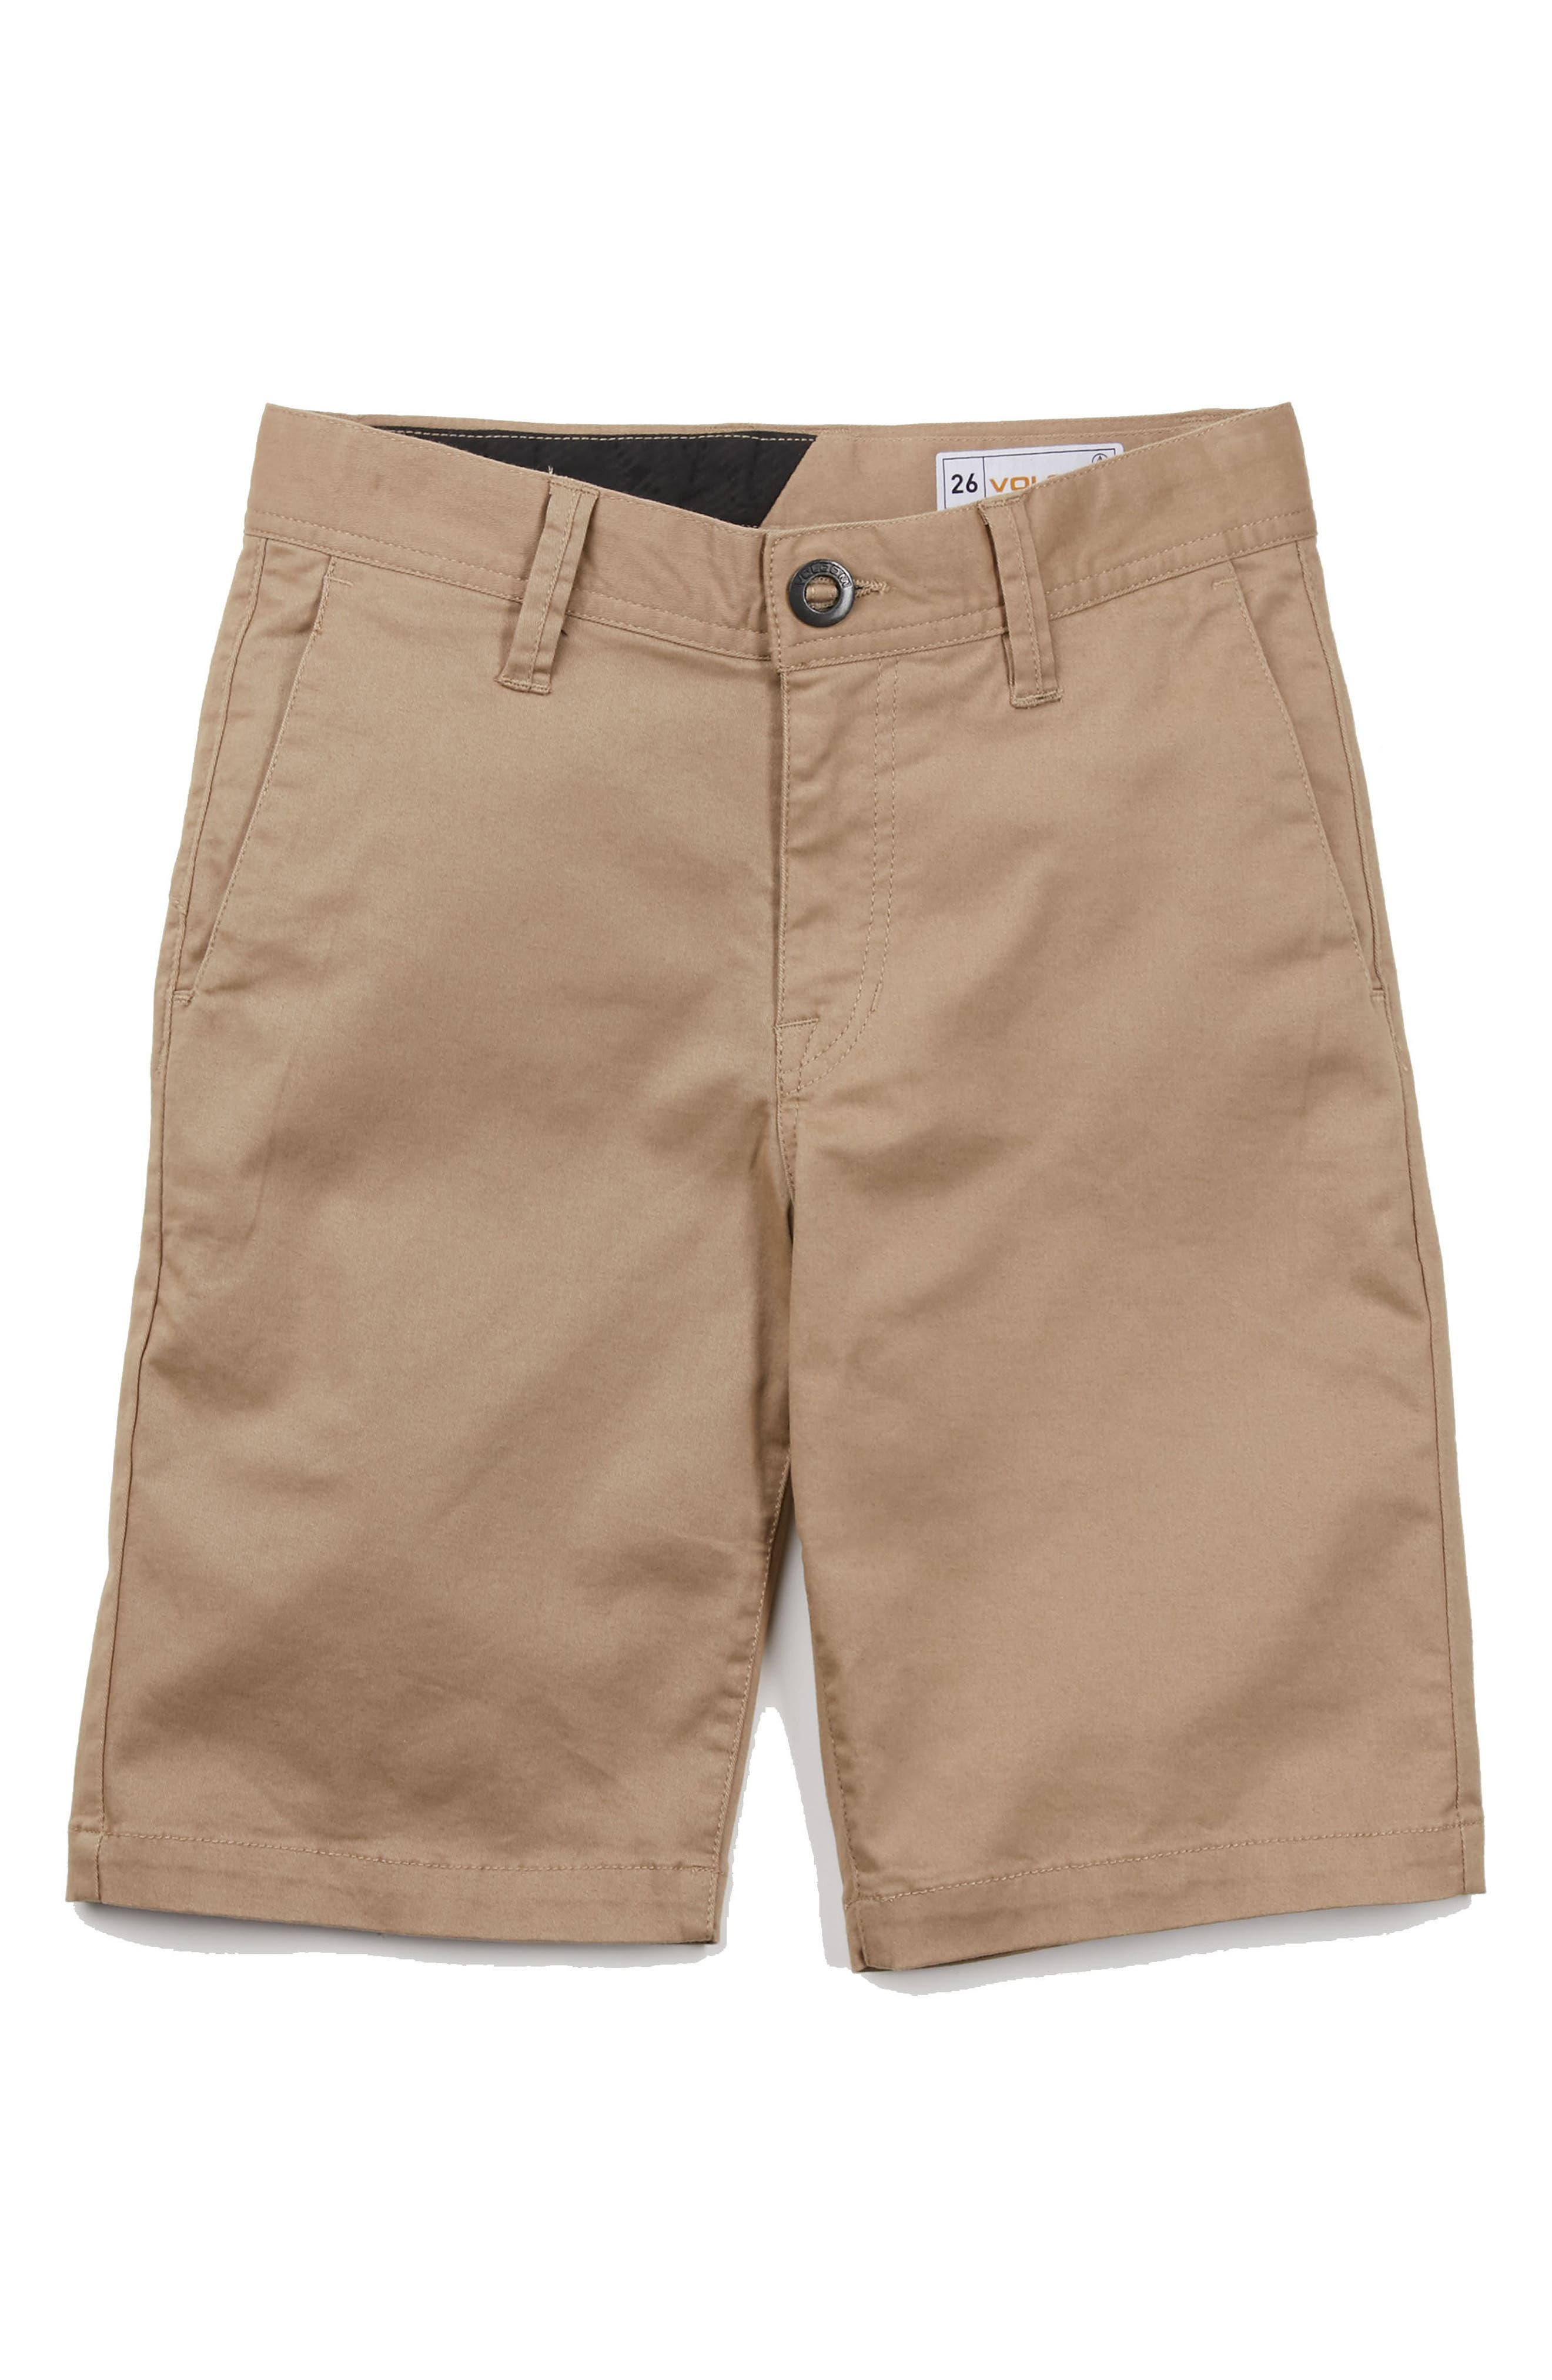 Cotton Twill Shorts,                         Main,                         color, 254